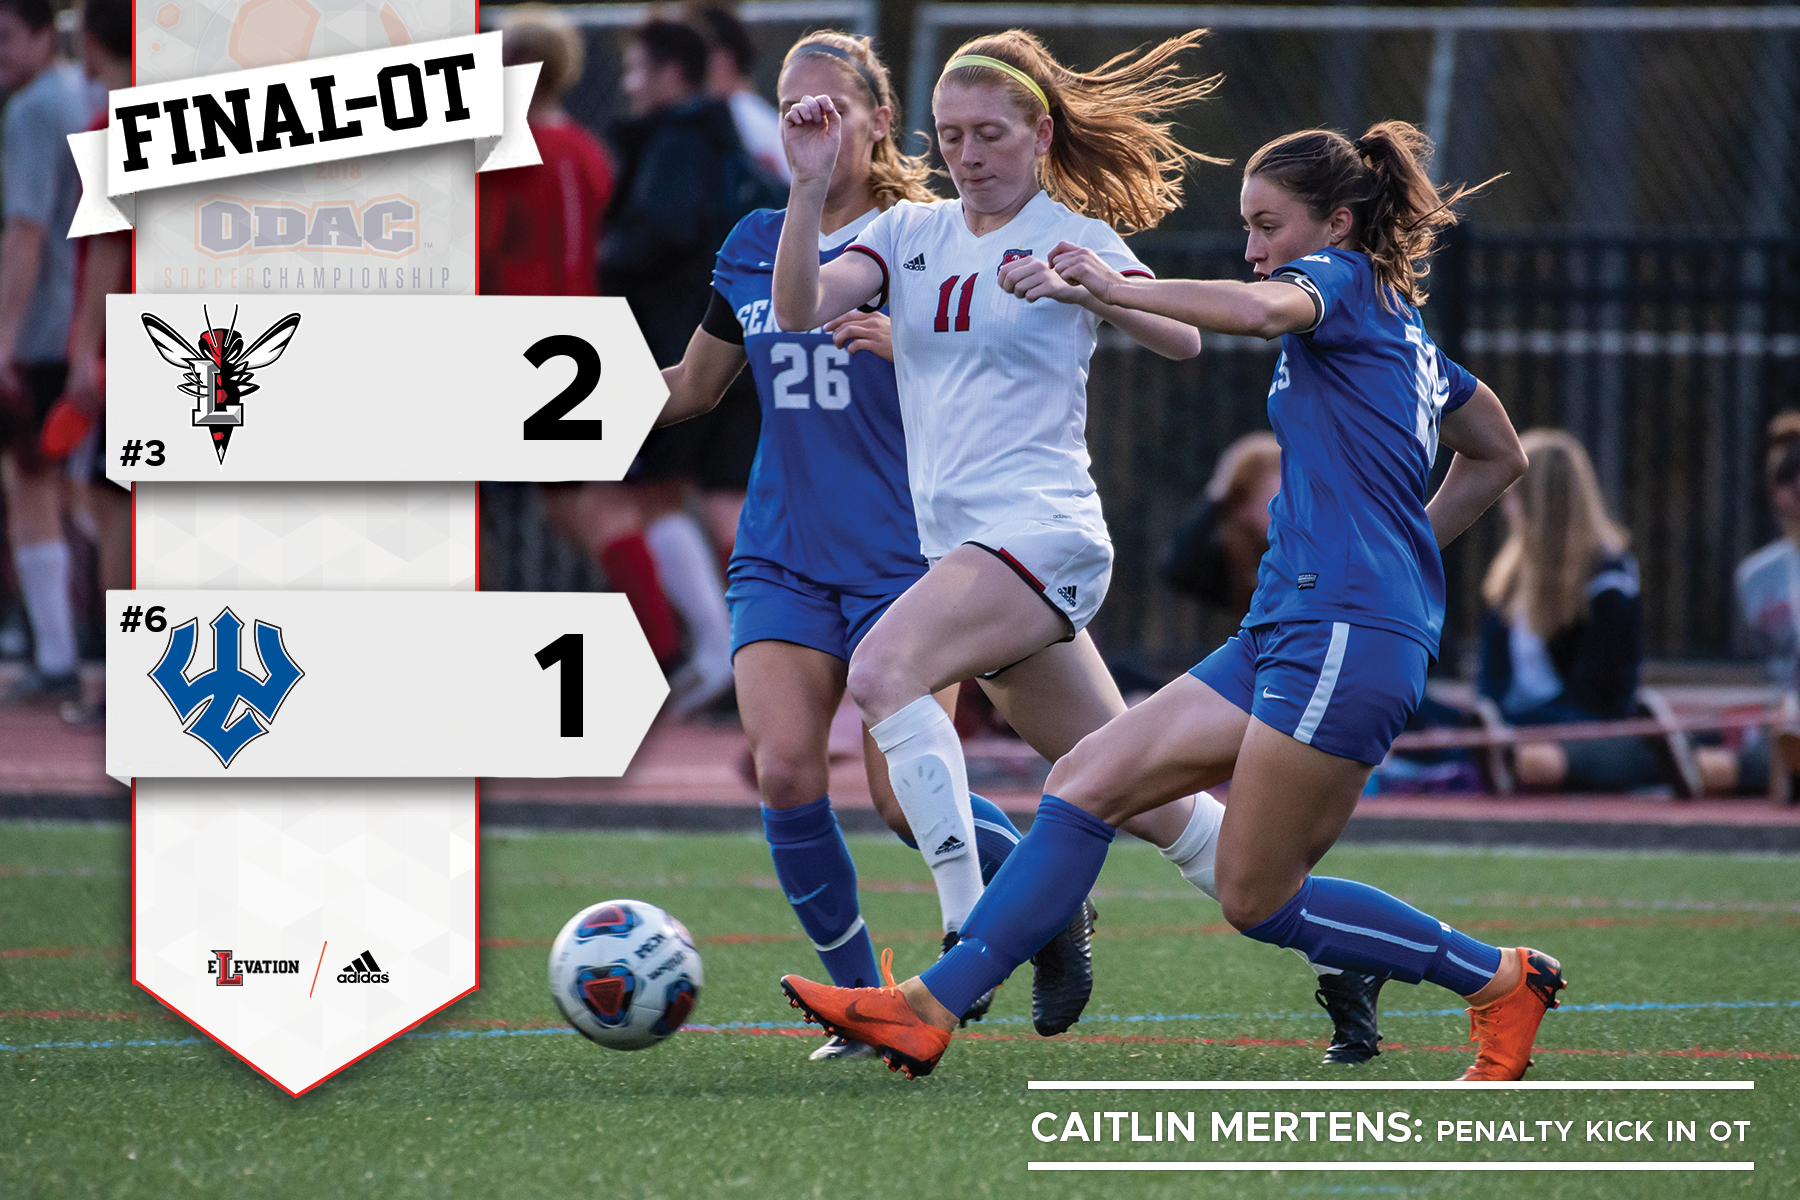 Caitlin Mertens playing soccer defended by two W&L players. Graphic showing 2-1 final score and team logos.